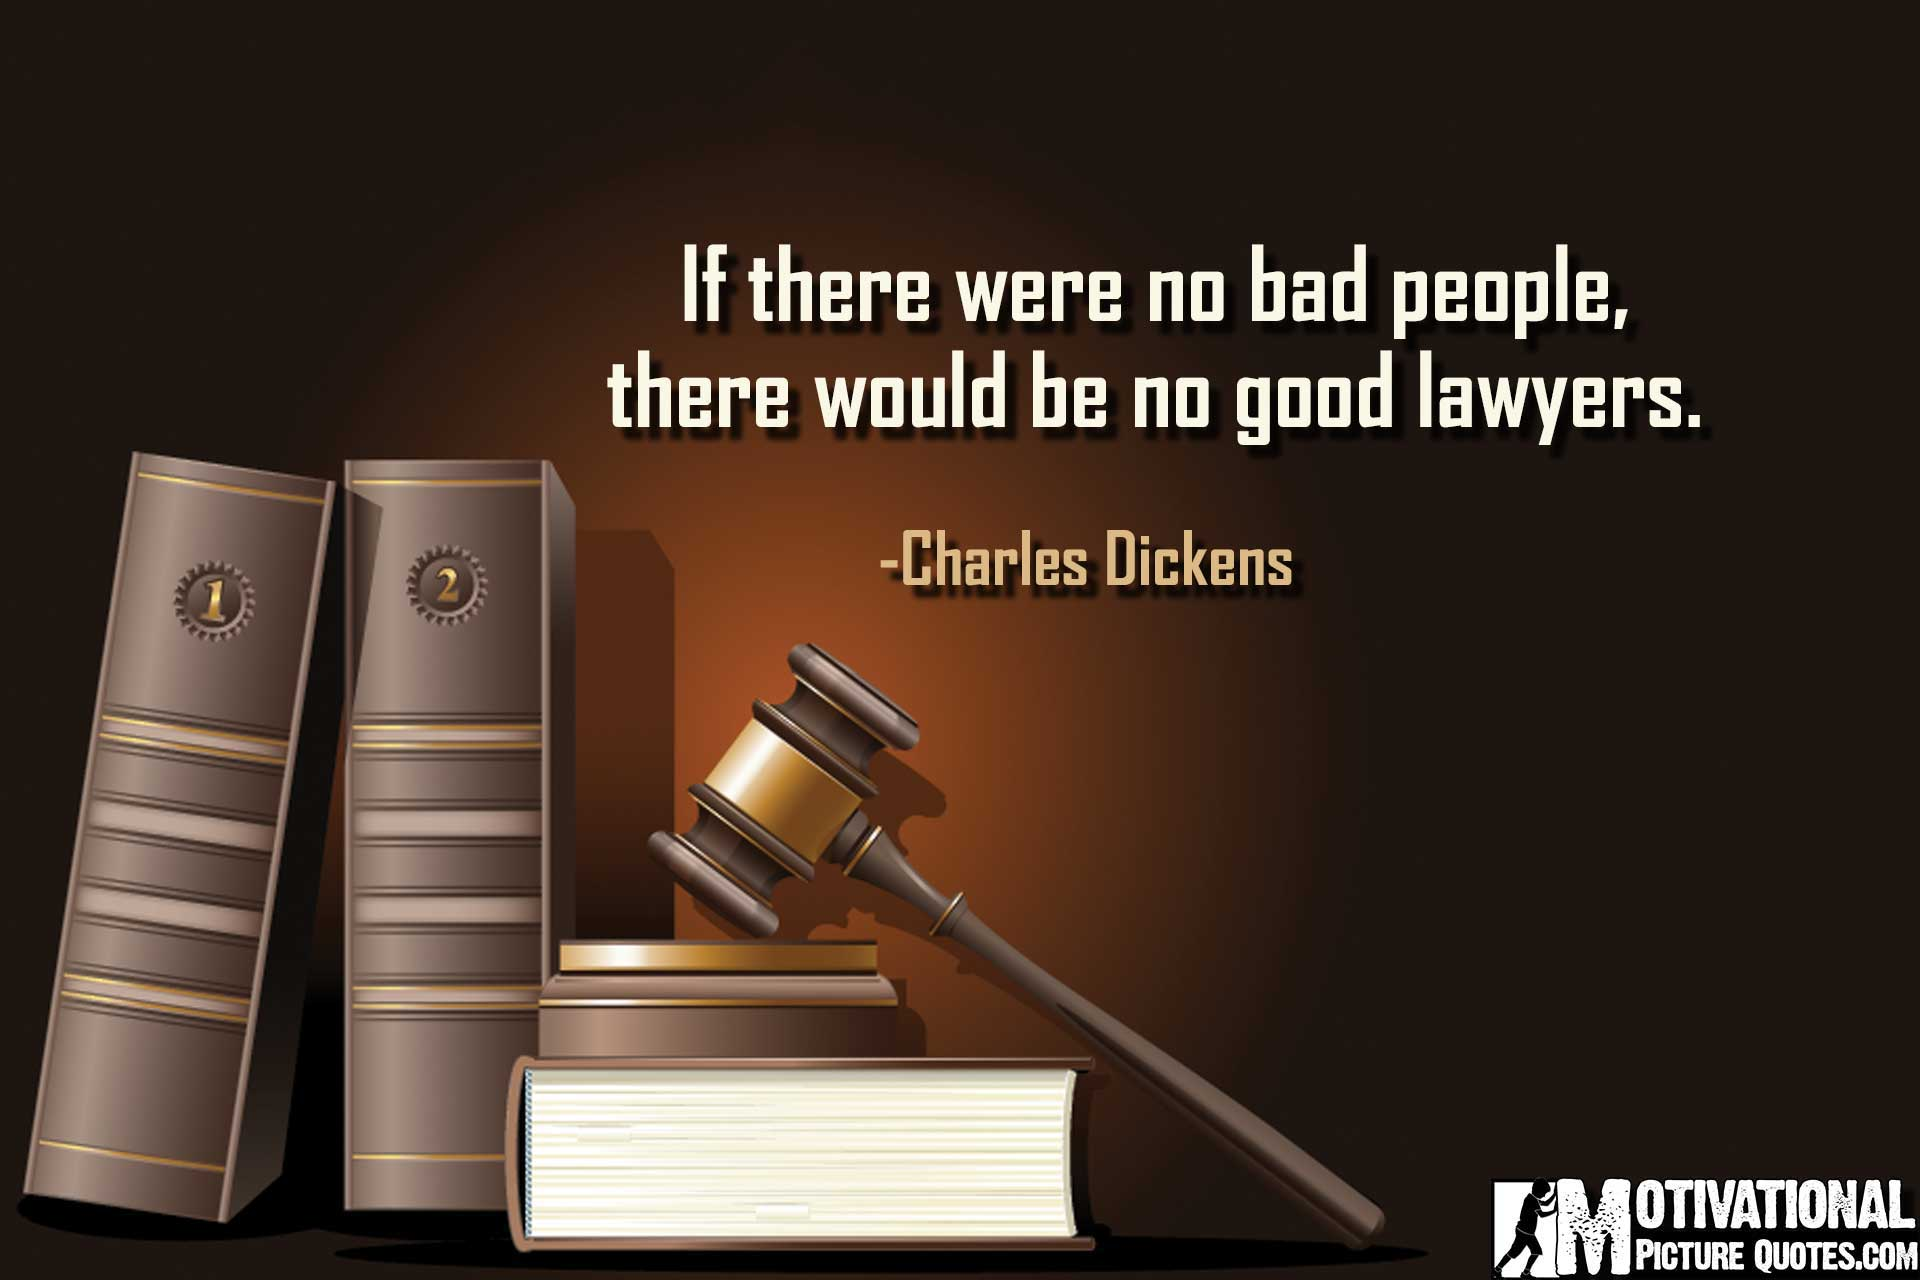 Famous Quotes 13 Inspirational Quotes For Law Students  Lawyers Quotes Images